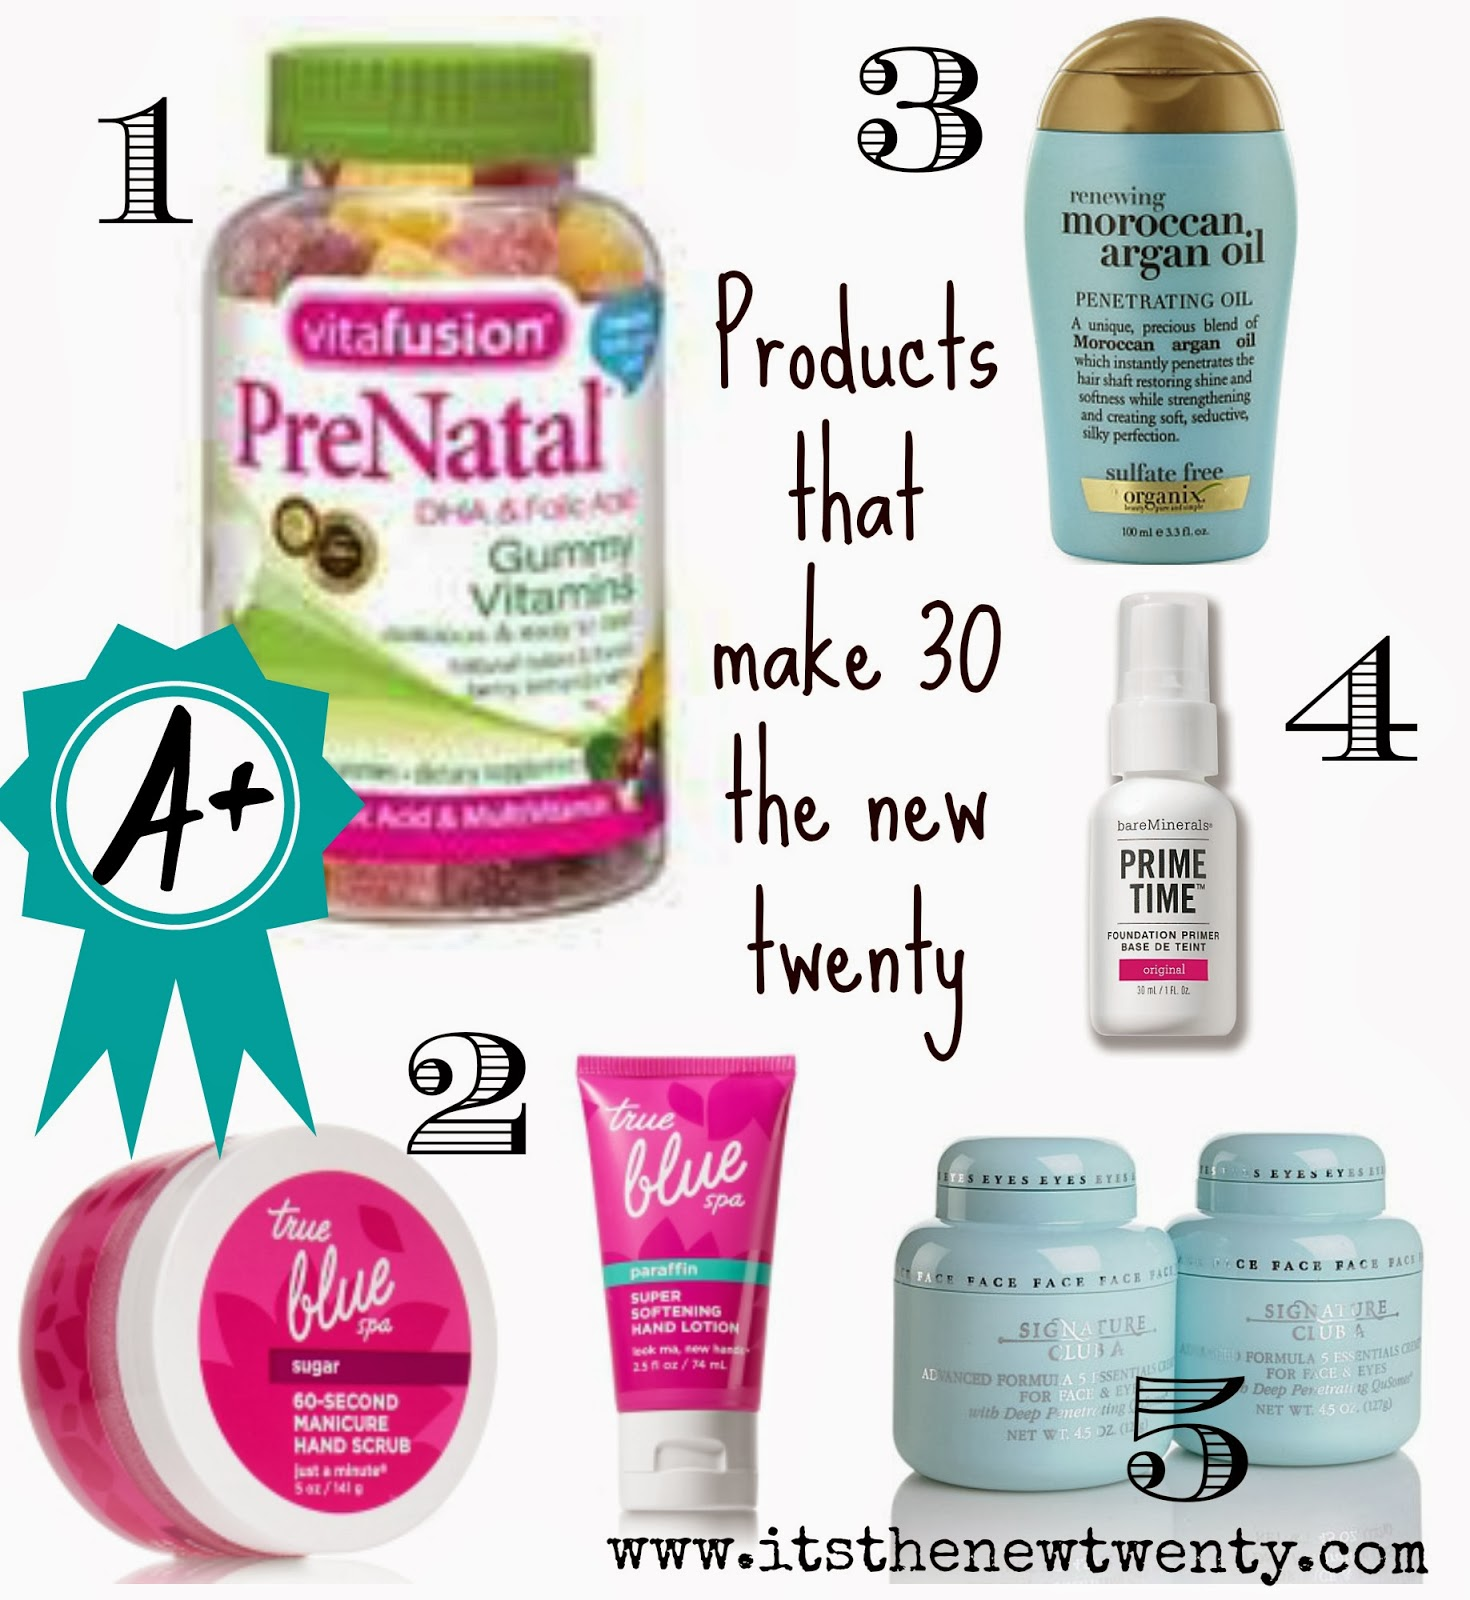 Best Prenatal Vitamins For Hair And Nails - Best Image Nail 2017